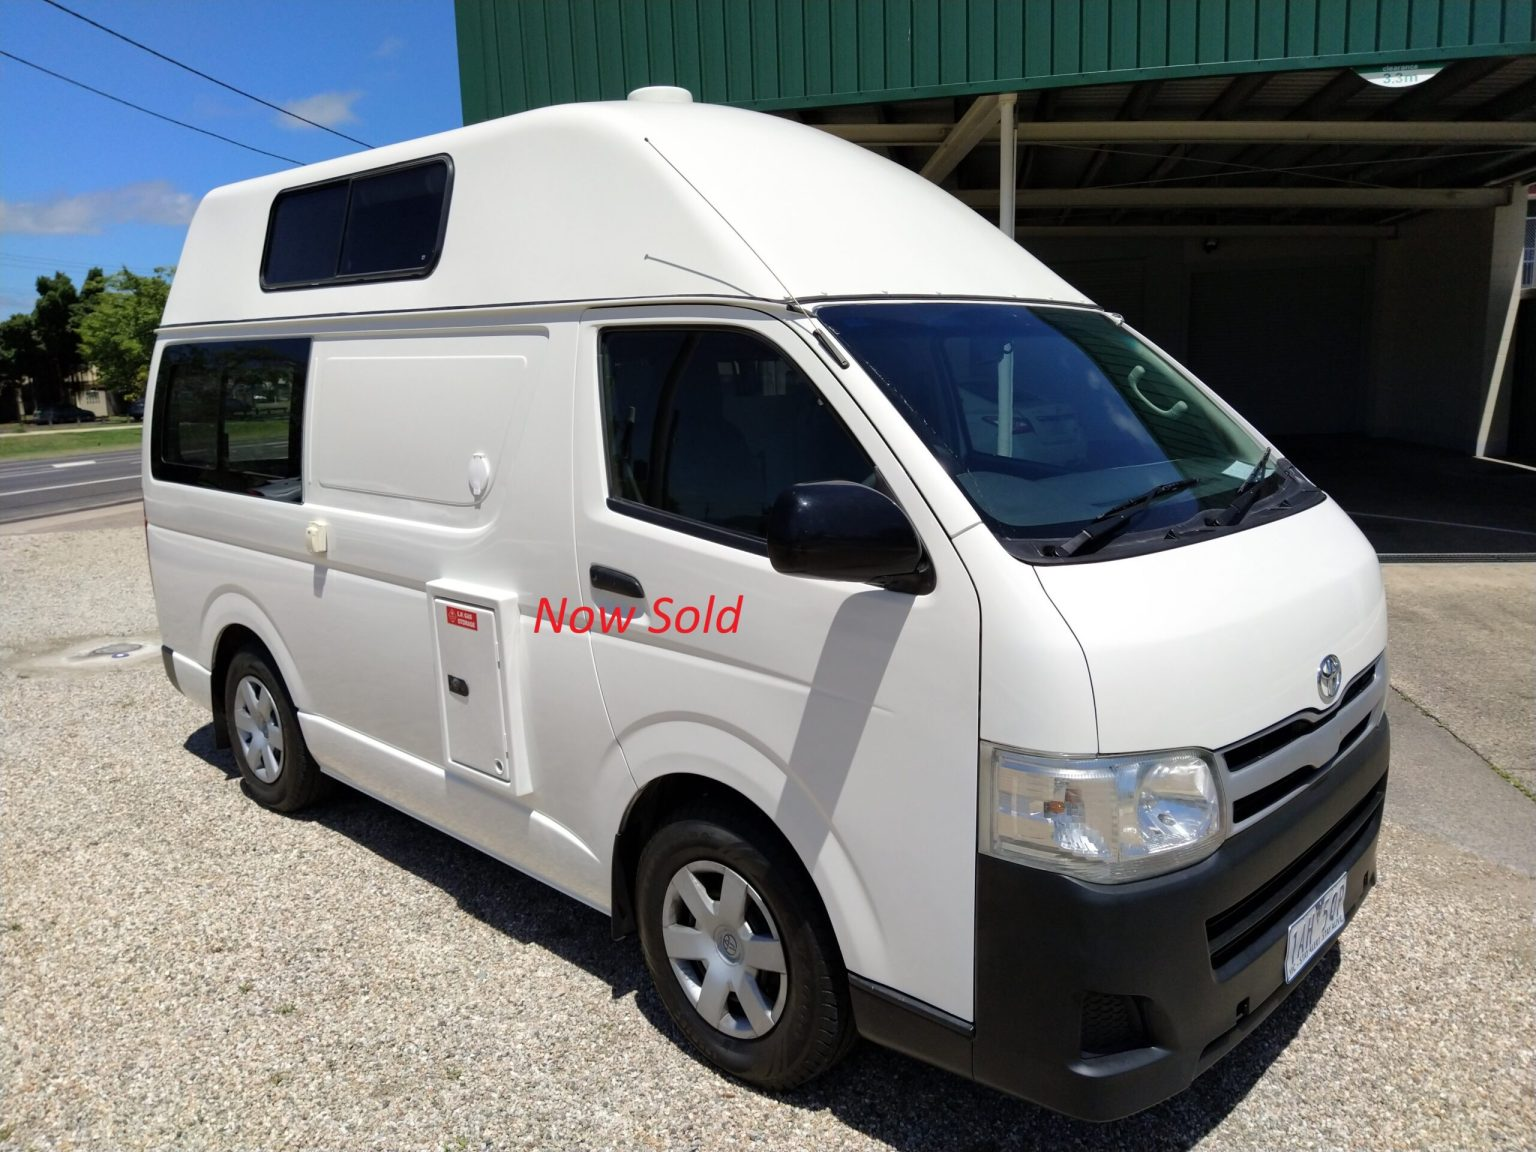 2015 Kea HiTop Toyota T490 2 Berth now SOLD